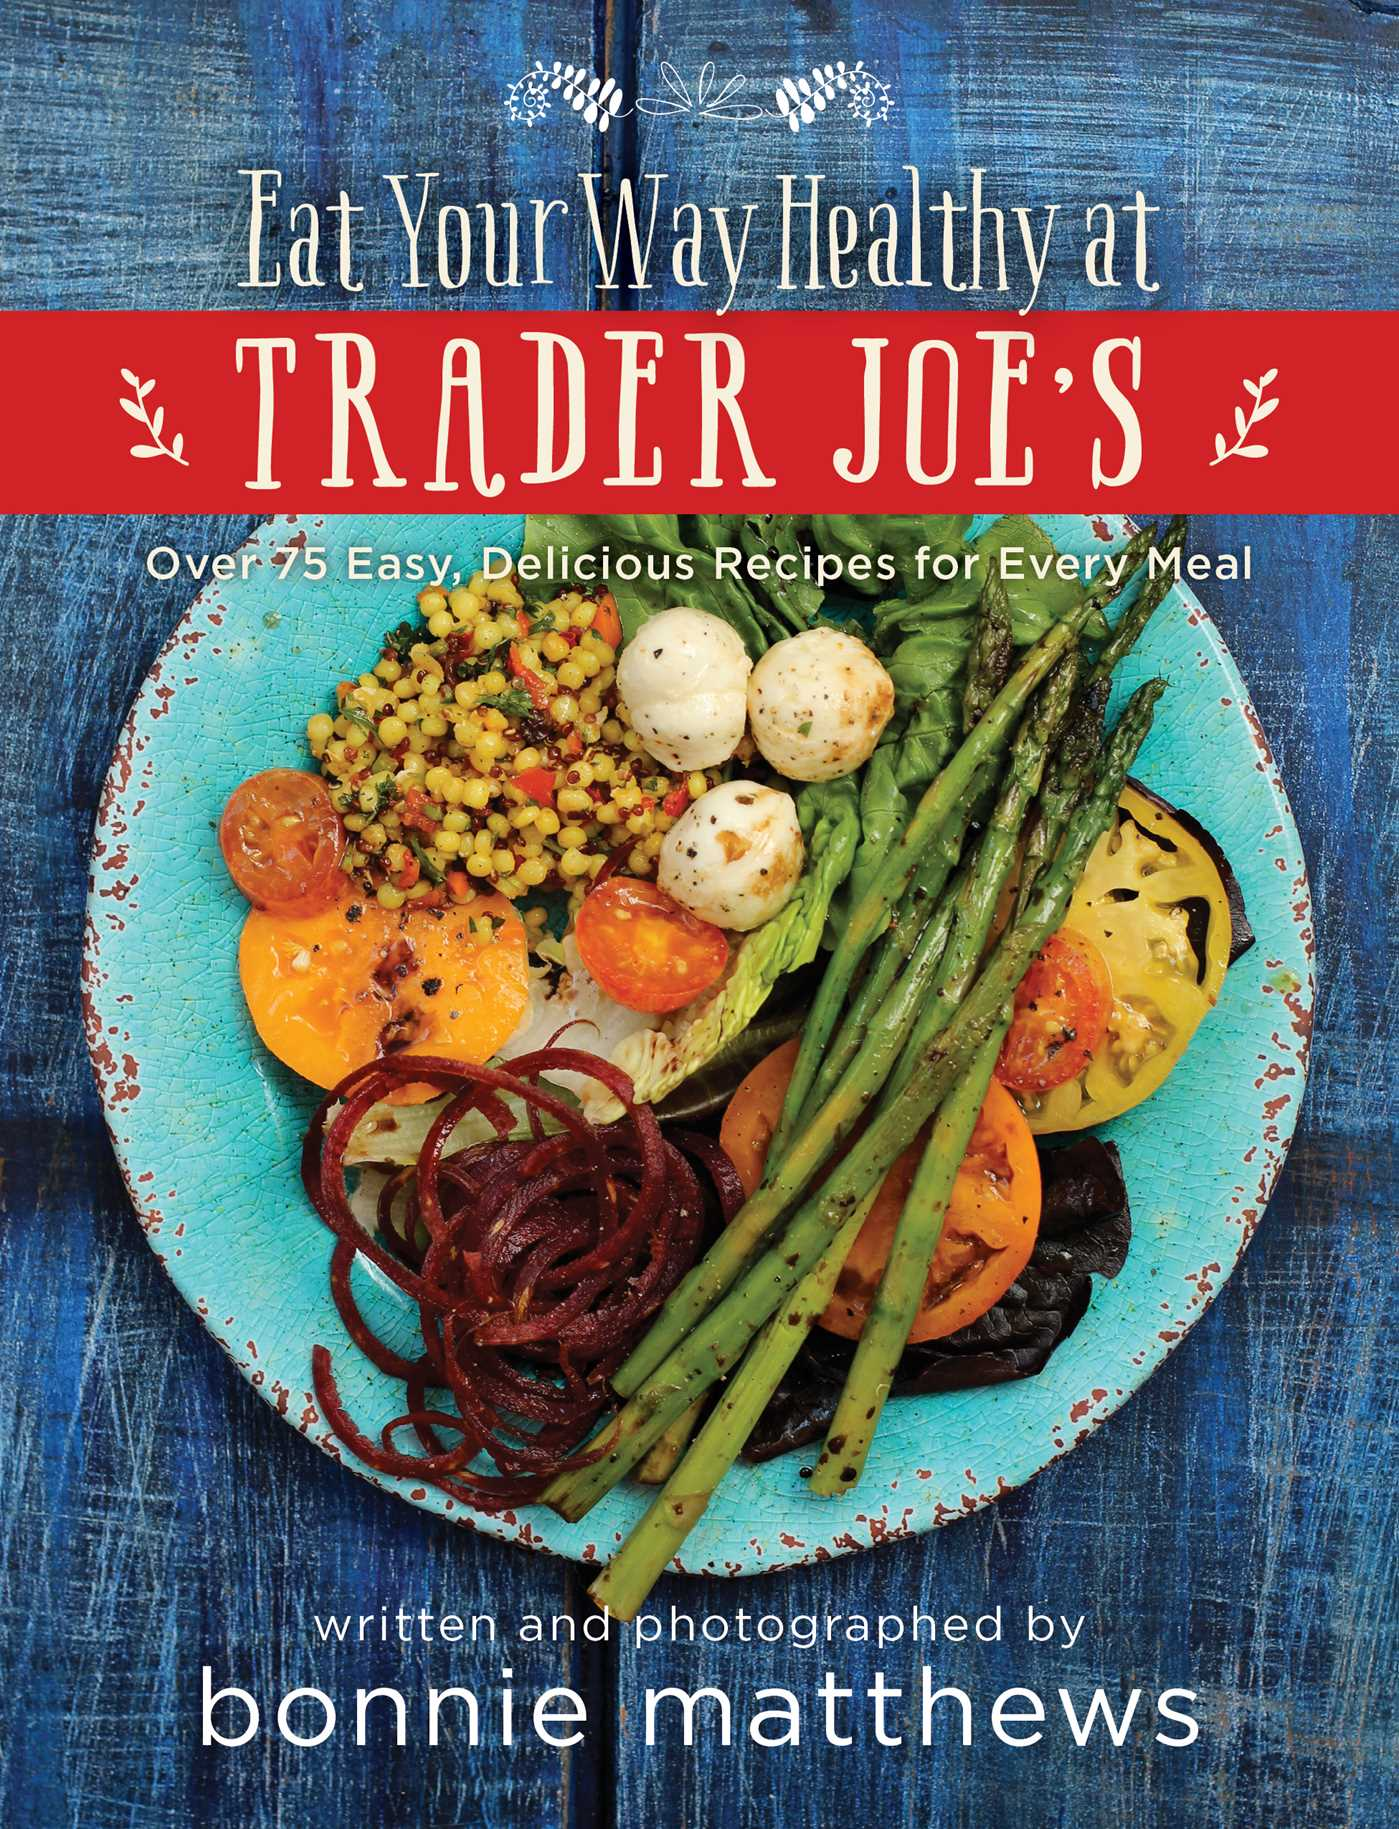 Book Cover Image (jpg): The Eat Your Way Healthy at Trader Joe's Cookbook